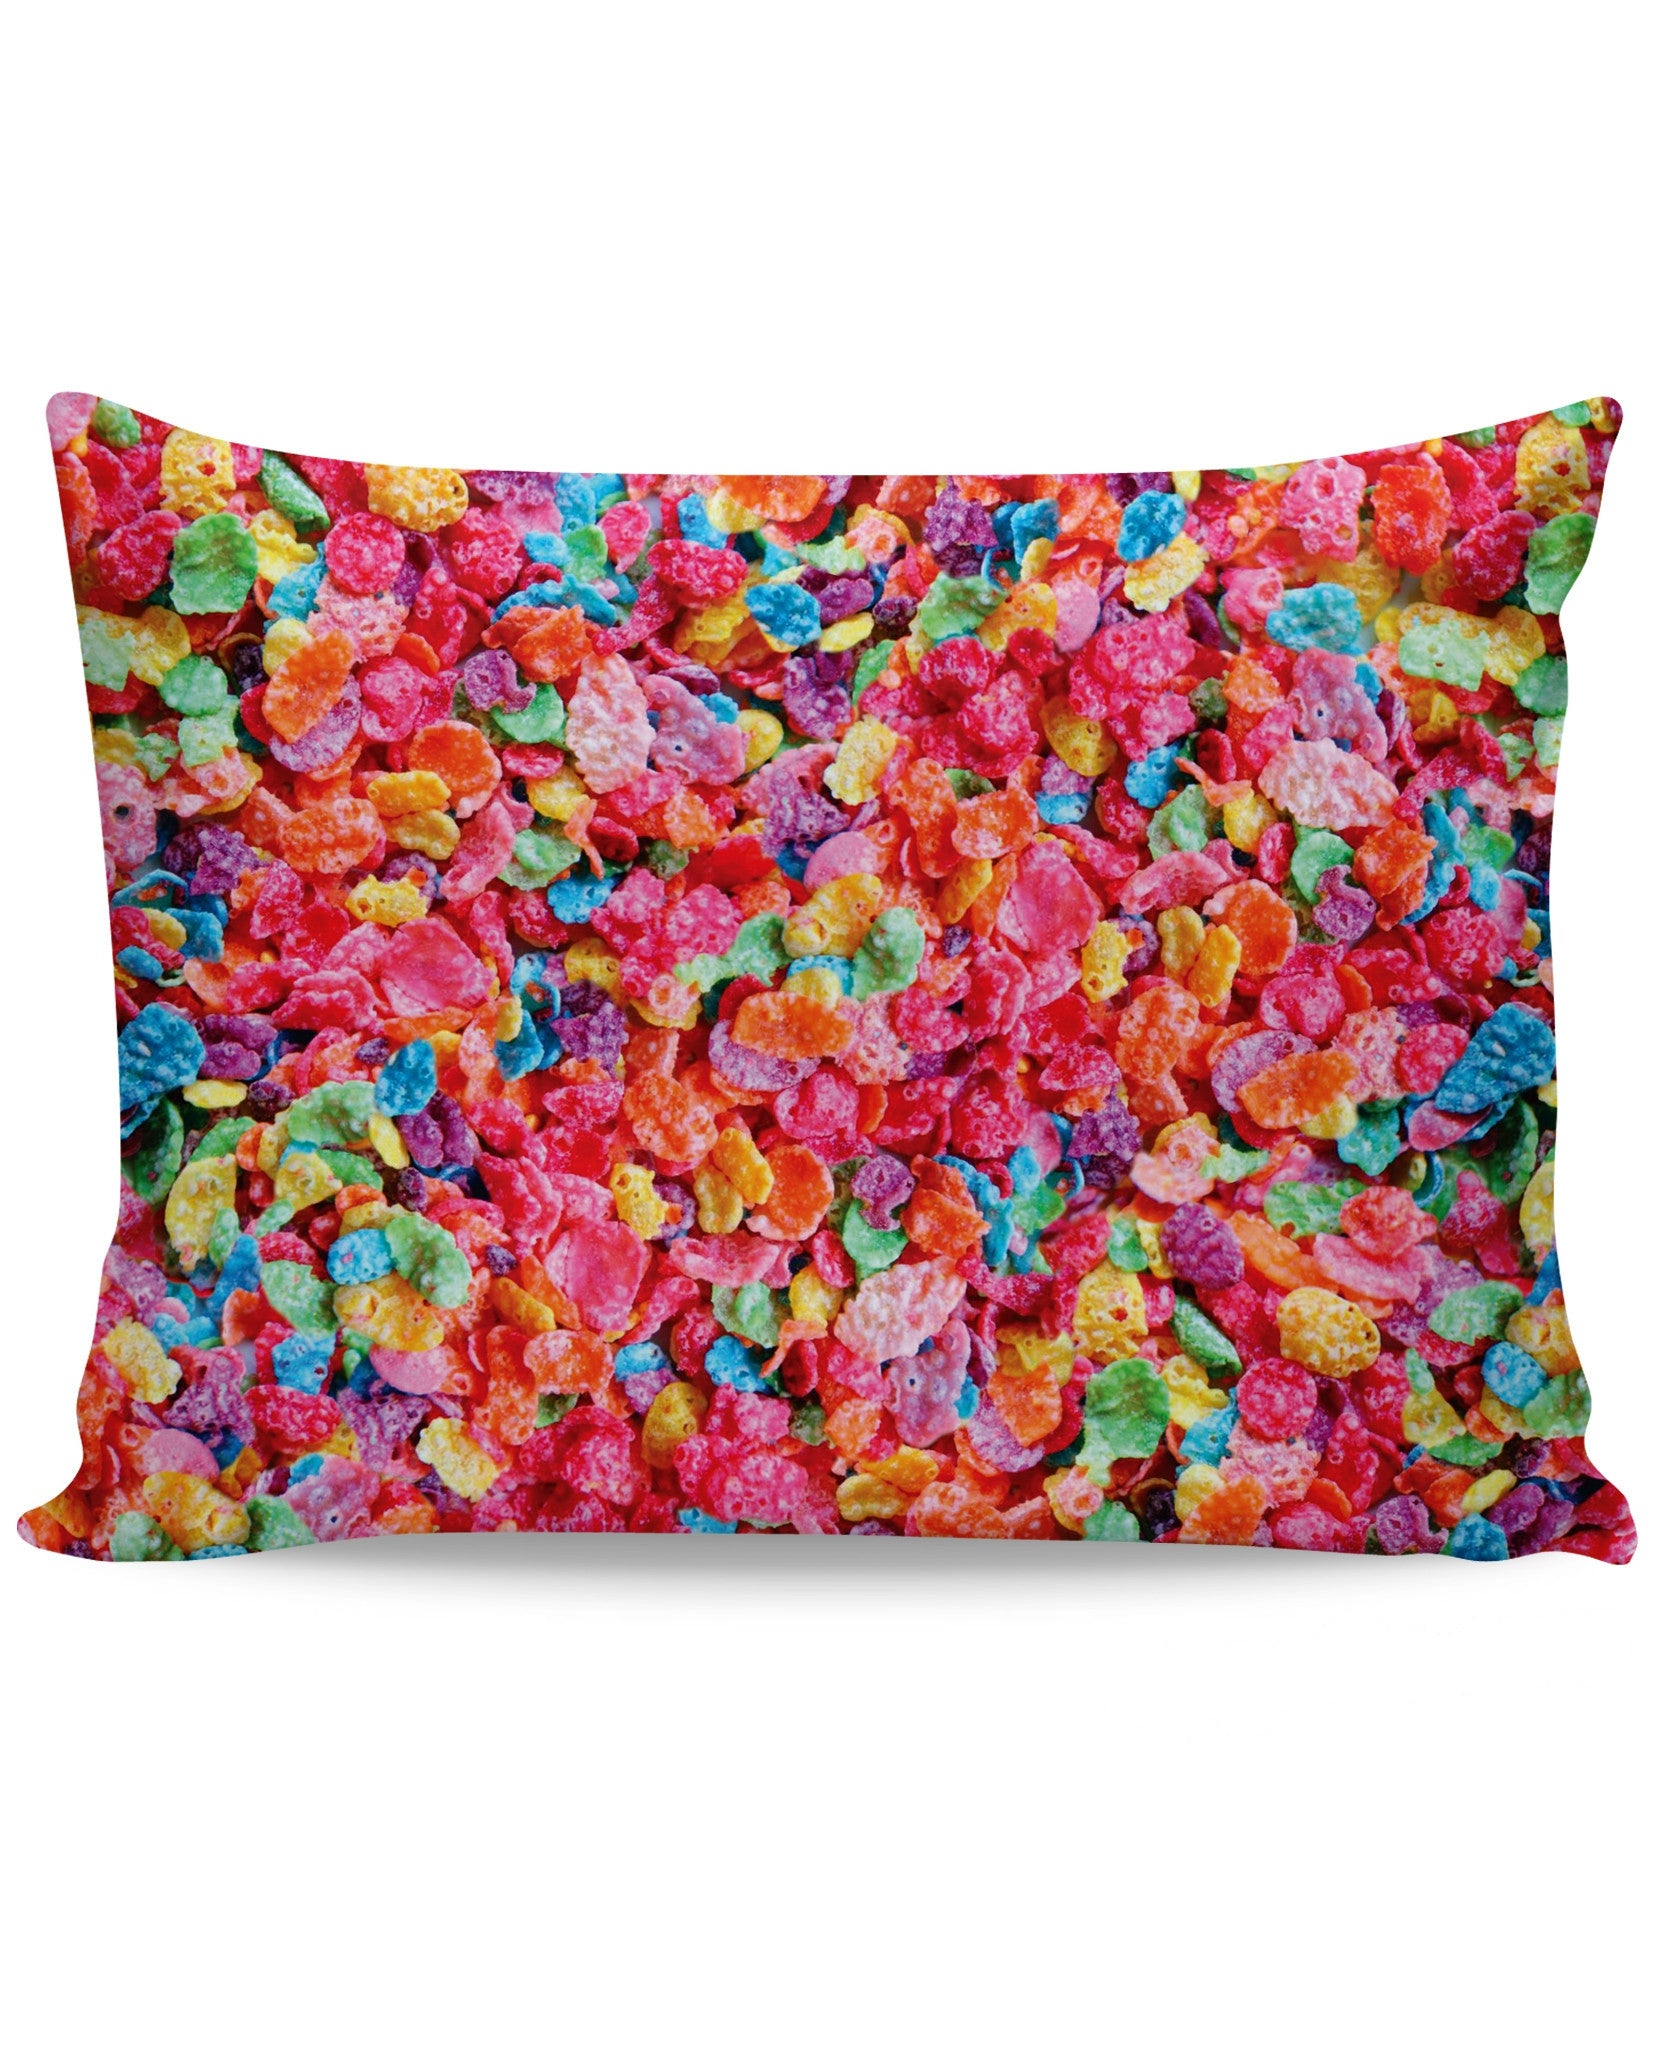 Fruity Pebbles Pillow Case - TShirtsRUS.co